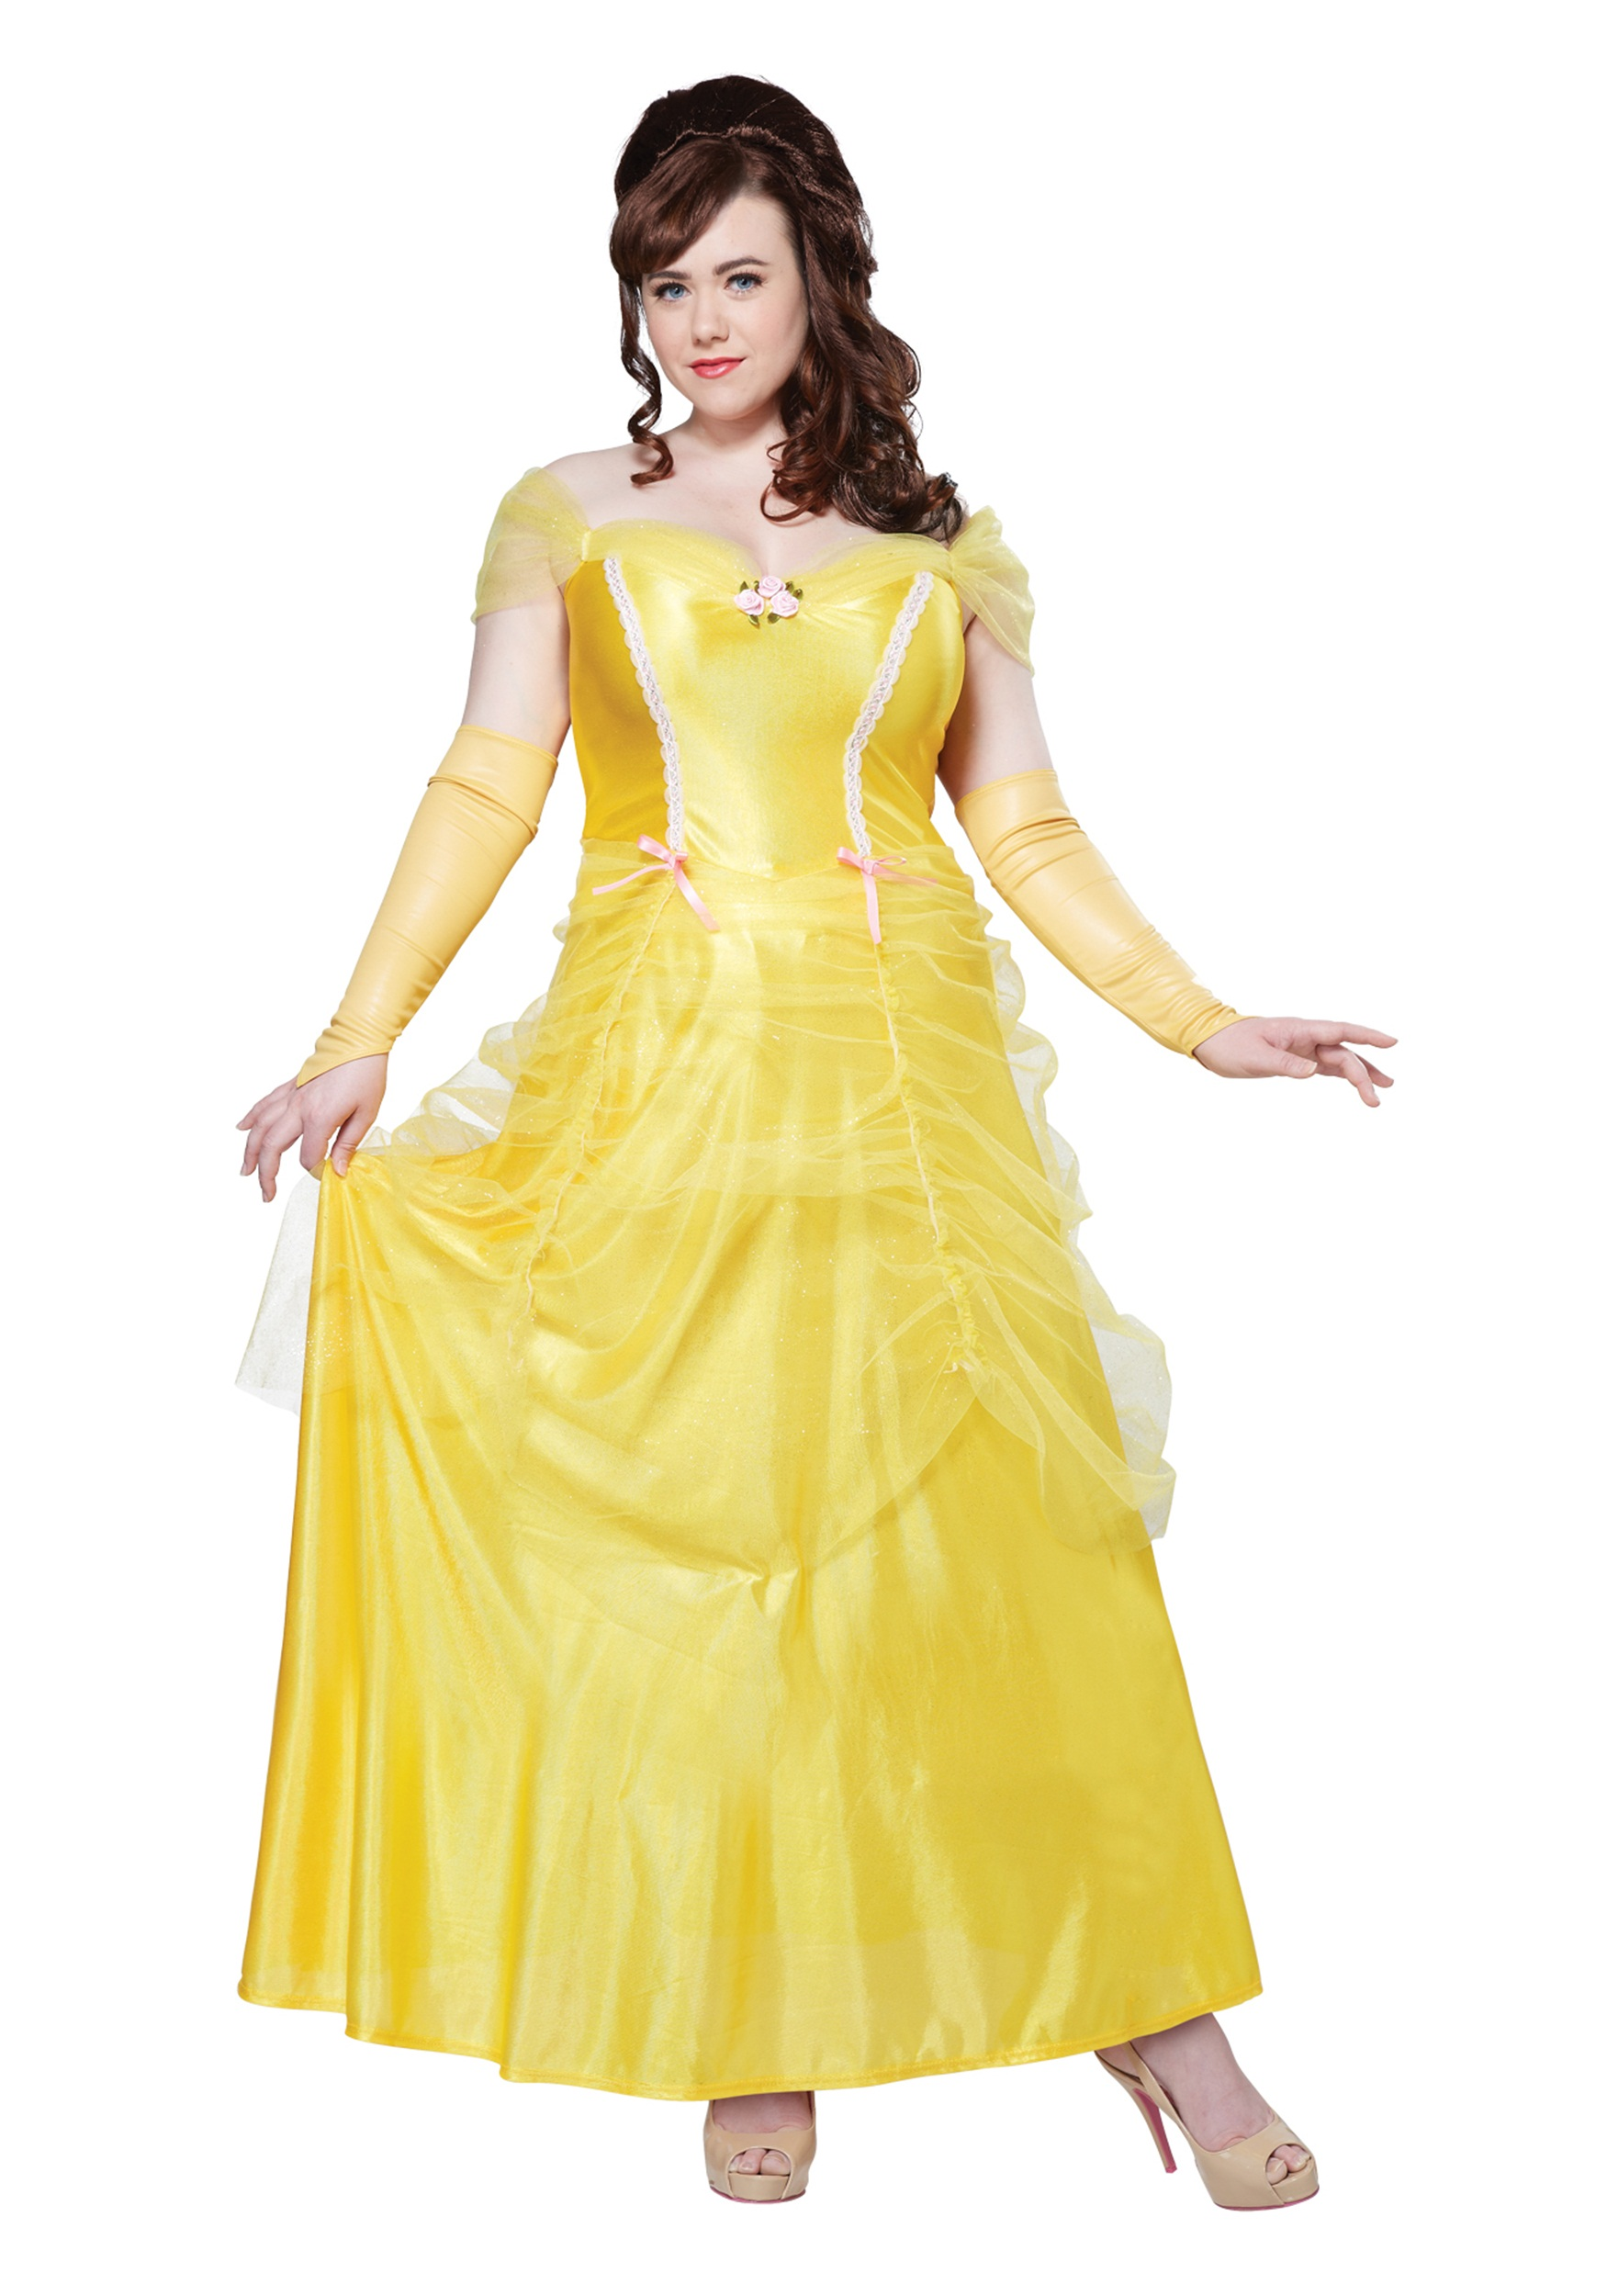 Plus Size Classic Beauty Costume